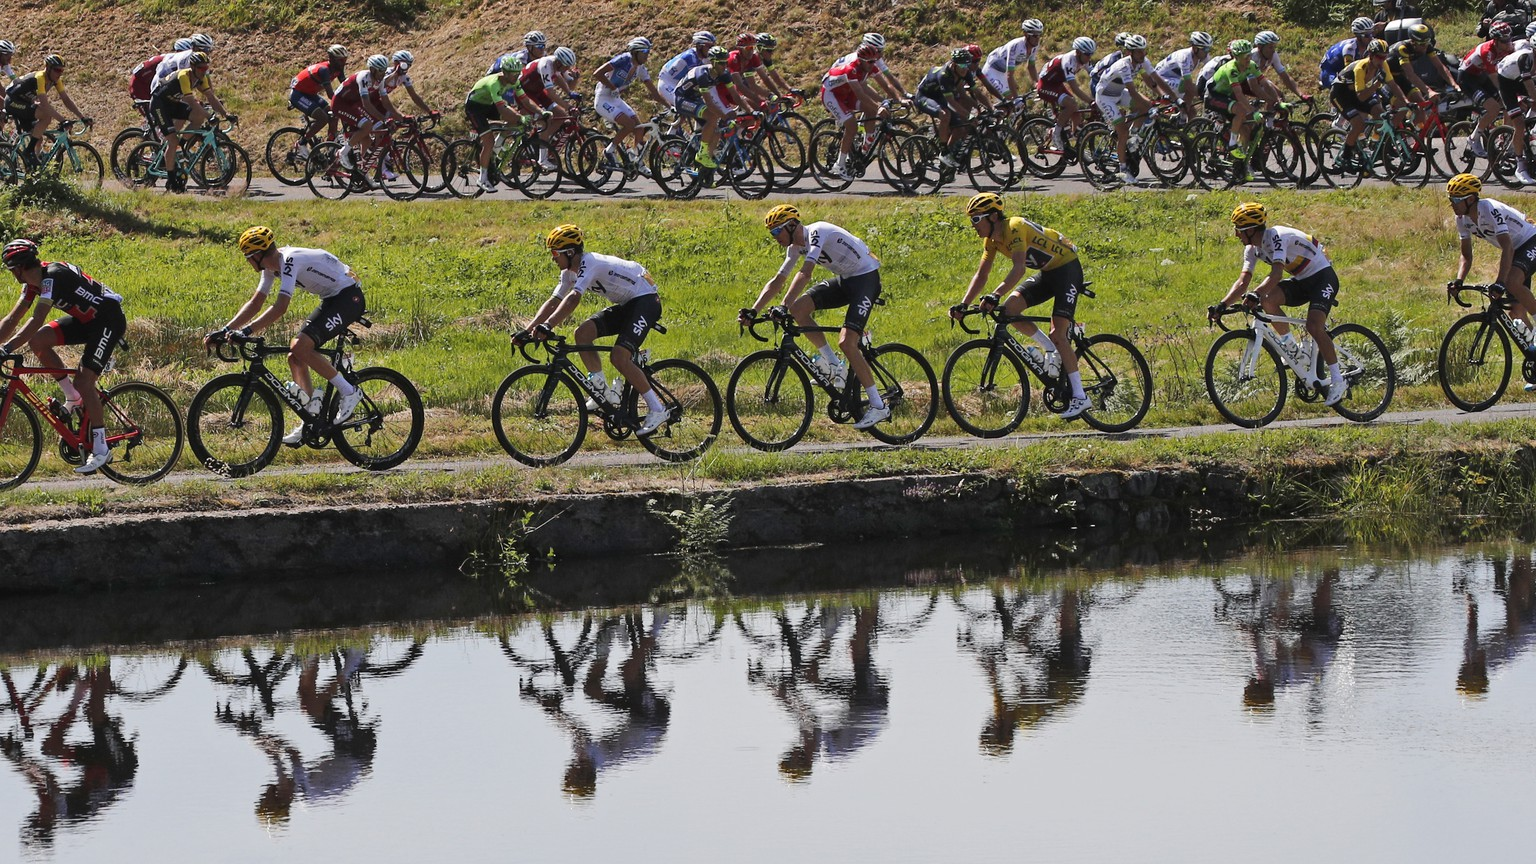 FILE - In this July 5, 2017 file photo, the pack with Britain's Geraint Thomas, wearing the overall leader's yellow jersey, is reflected in a pond during the fifth stage of the Tour de France cycling race over 160.5 kilometers (99.7 miles) with start in Vittel and finish in La Planche des Belles Filles, France. With seven mountain stages and five summit finishes, including three above 2,000 meters, this year's Tour de France is the highest in the history of the race. (AP Photo/Christophe Ena, File)